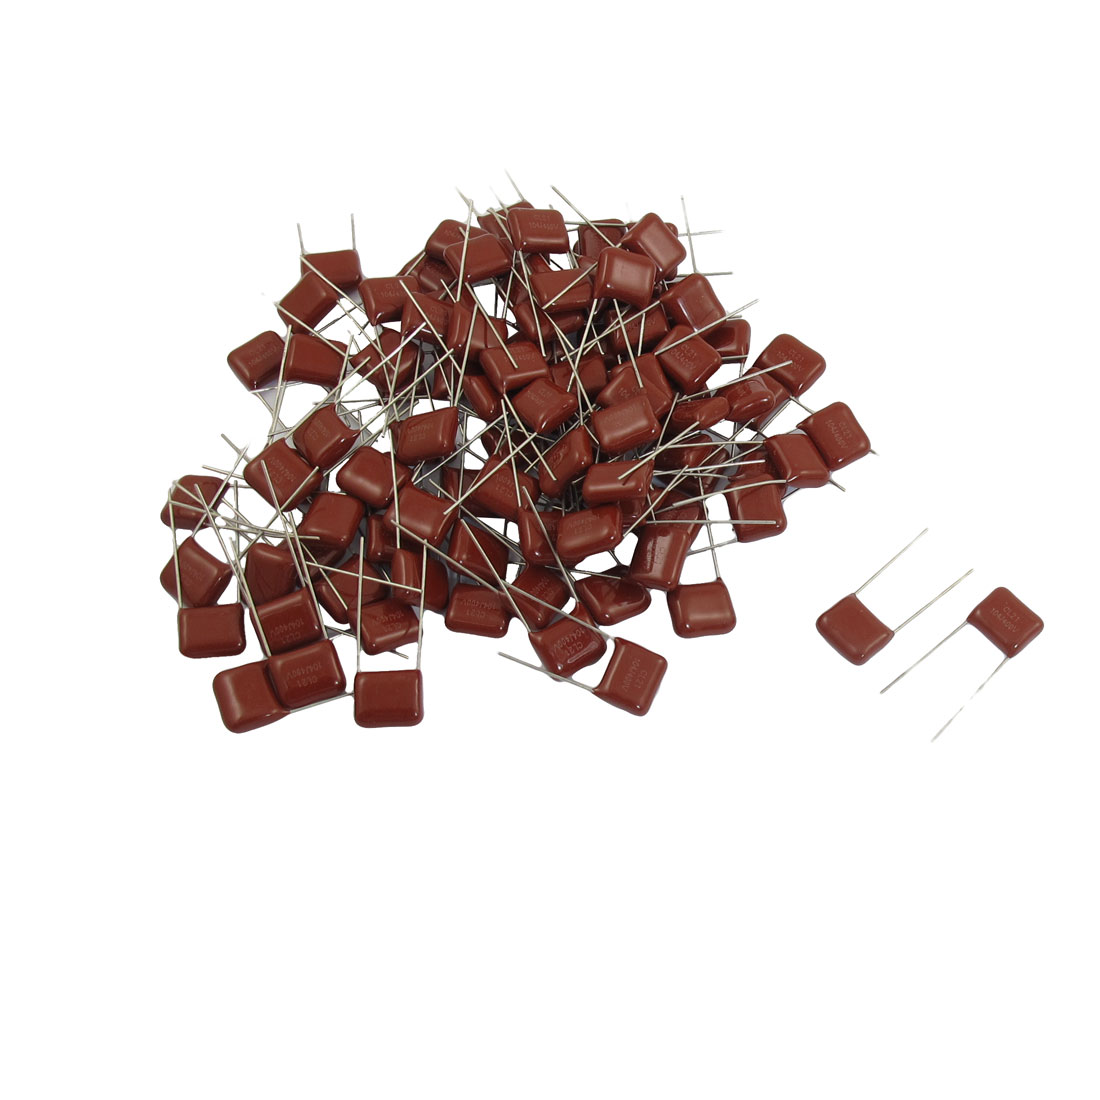 100 Pcs CL21 DIP Lead DC 400V Metallized Film Capacitors